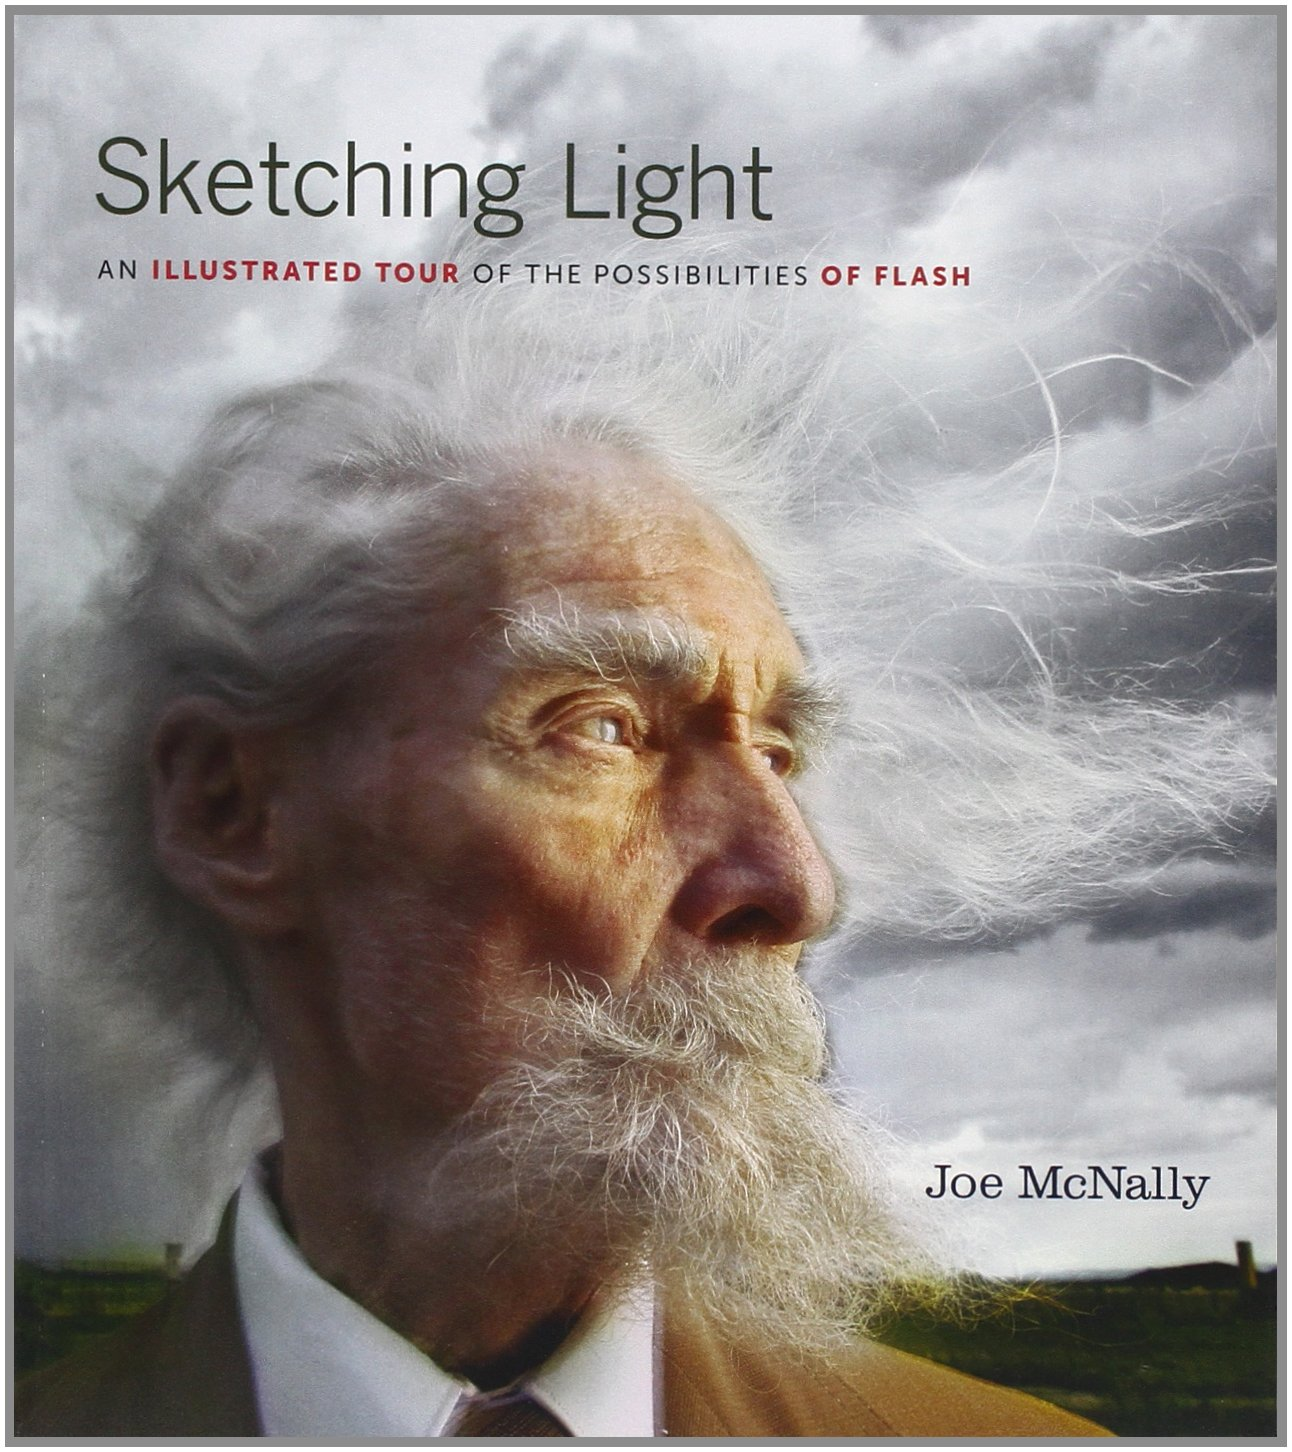 Sketching Light: An Illustrated Tour of the